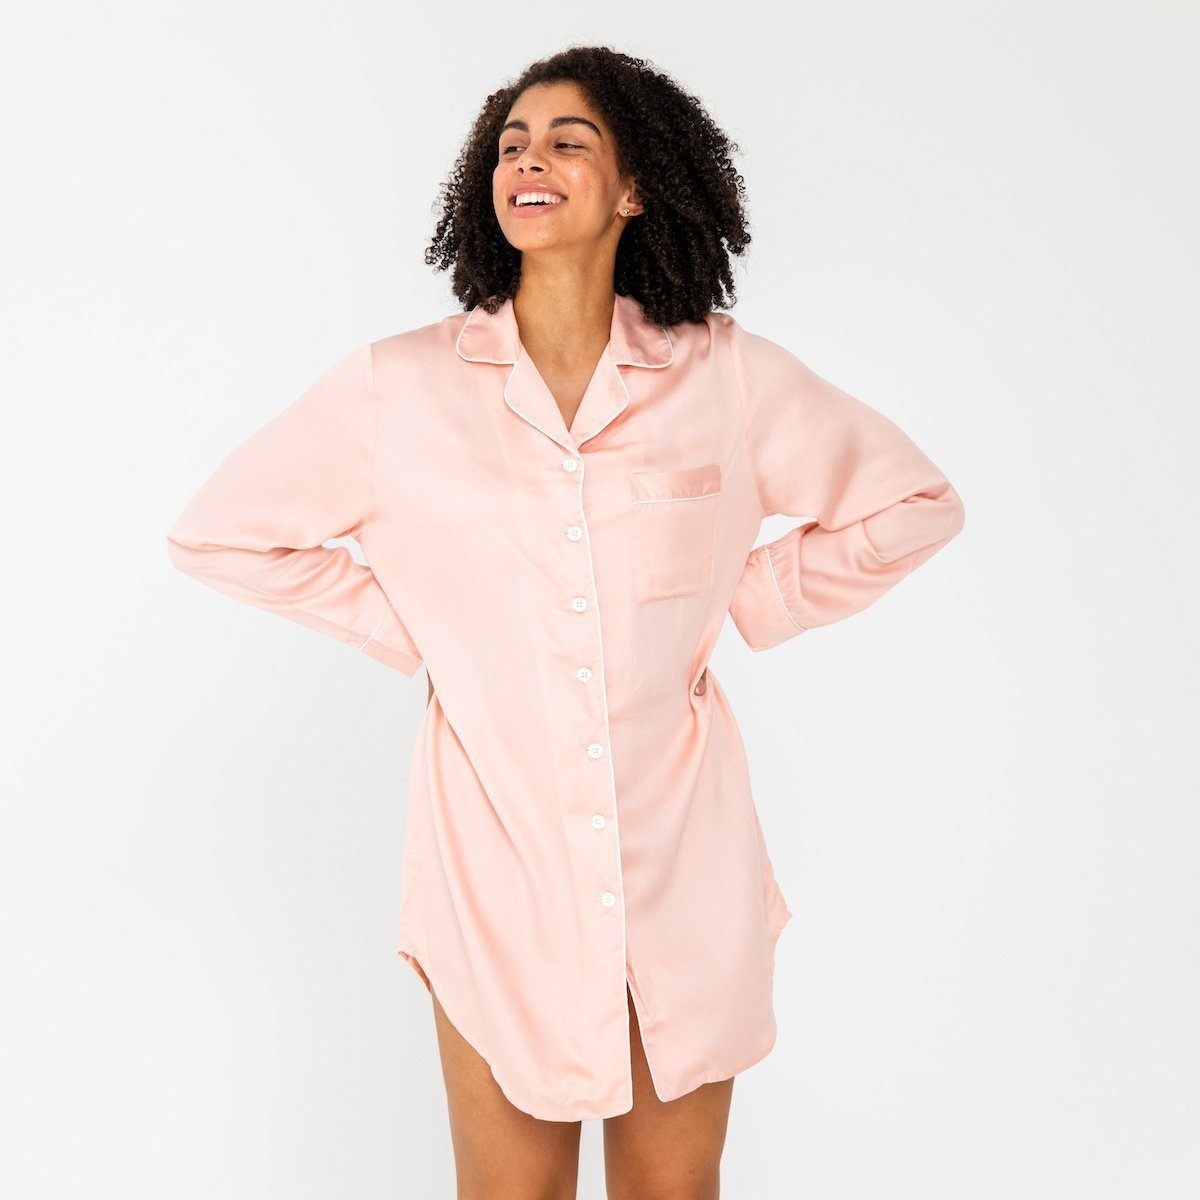 Ettitude Bamboo Lyocell Sleep Shirt - Cloud Pink Clothing Ettitude Cloud Pink S